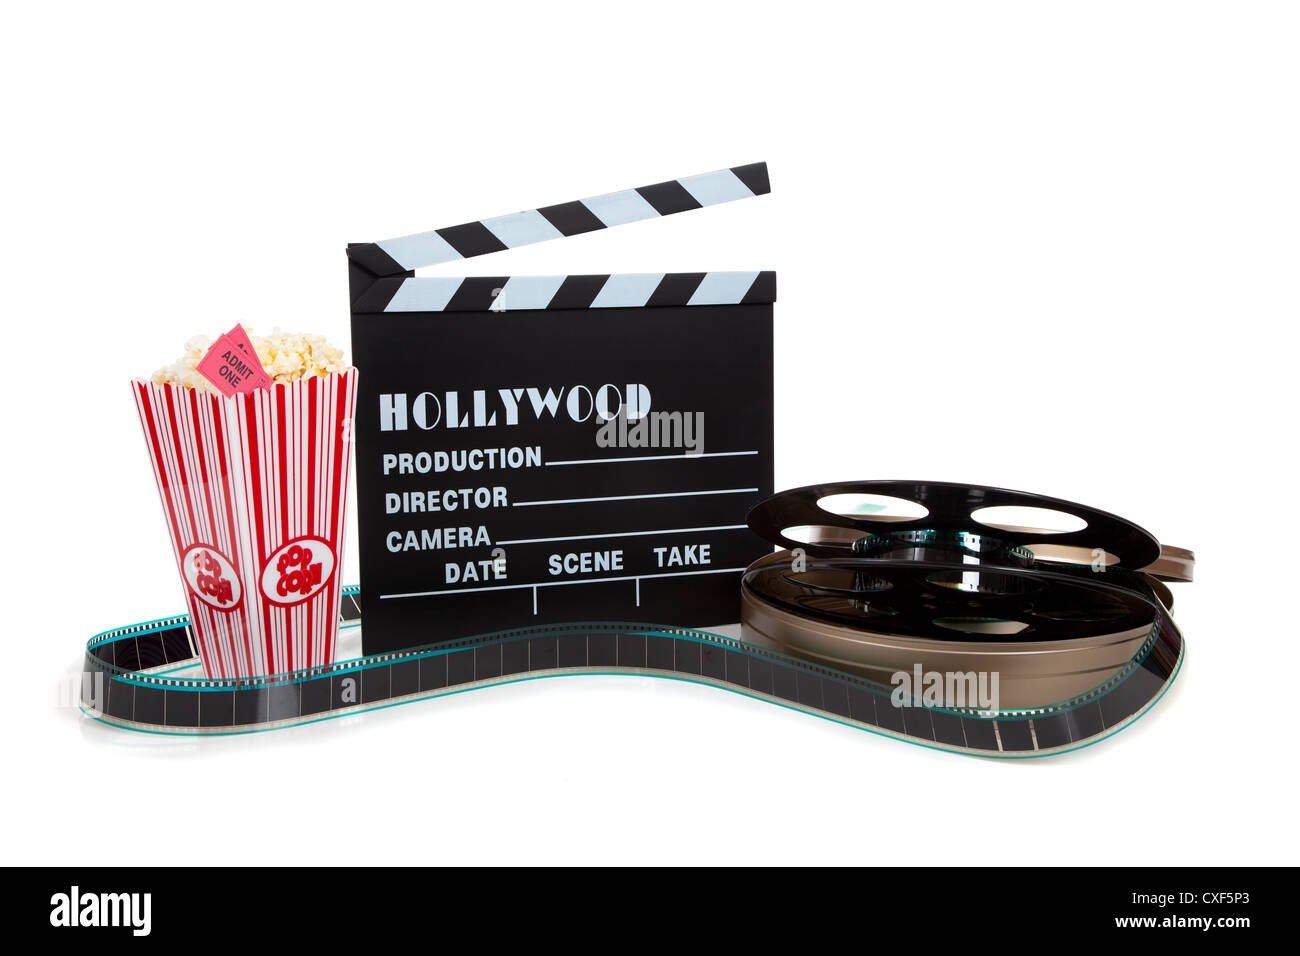 Movie popcorn and tickets with reel of film and Hollywood clapboard - Stock Image